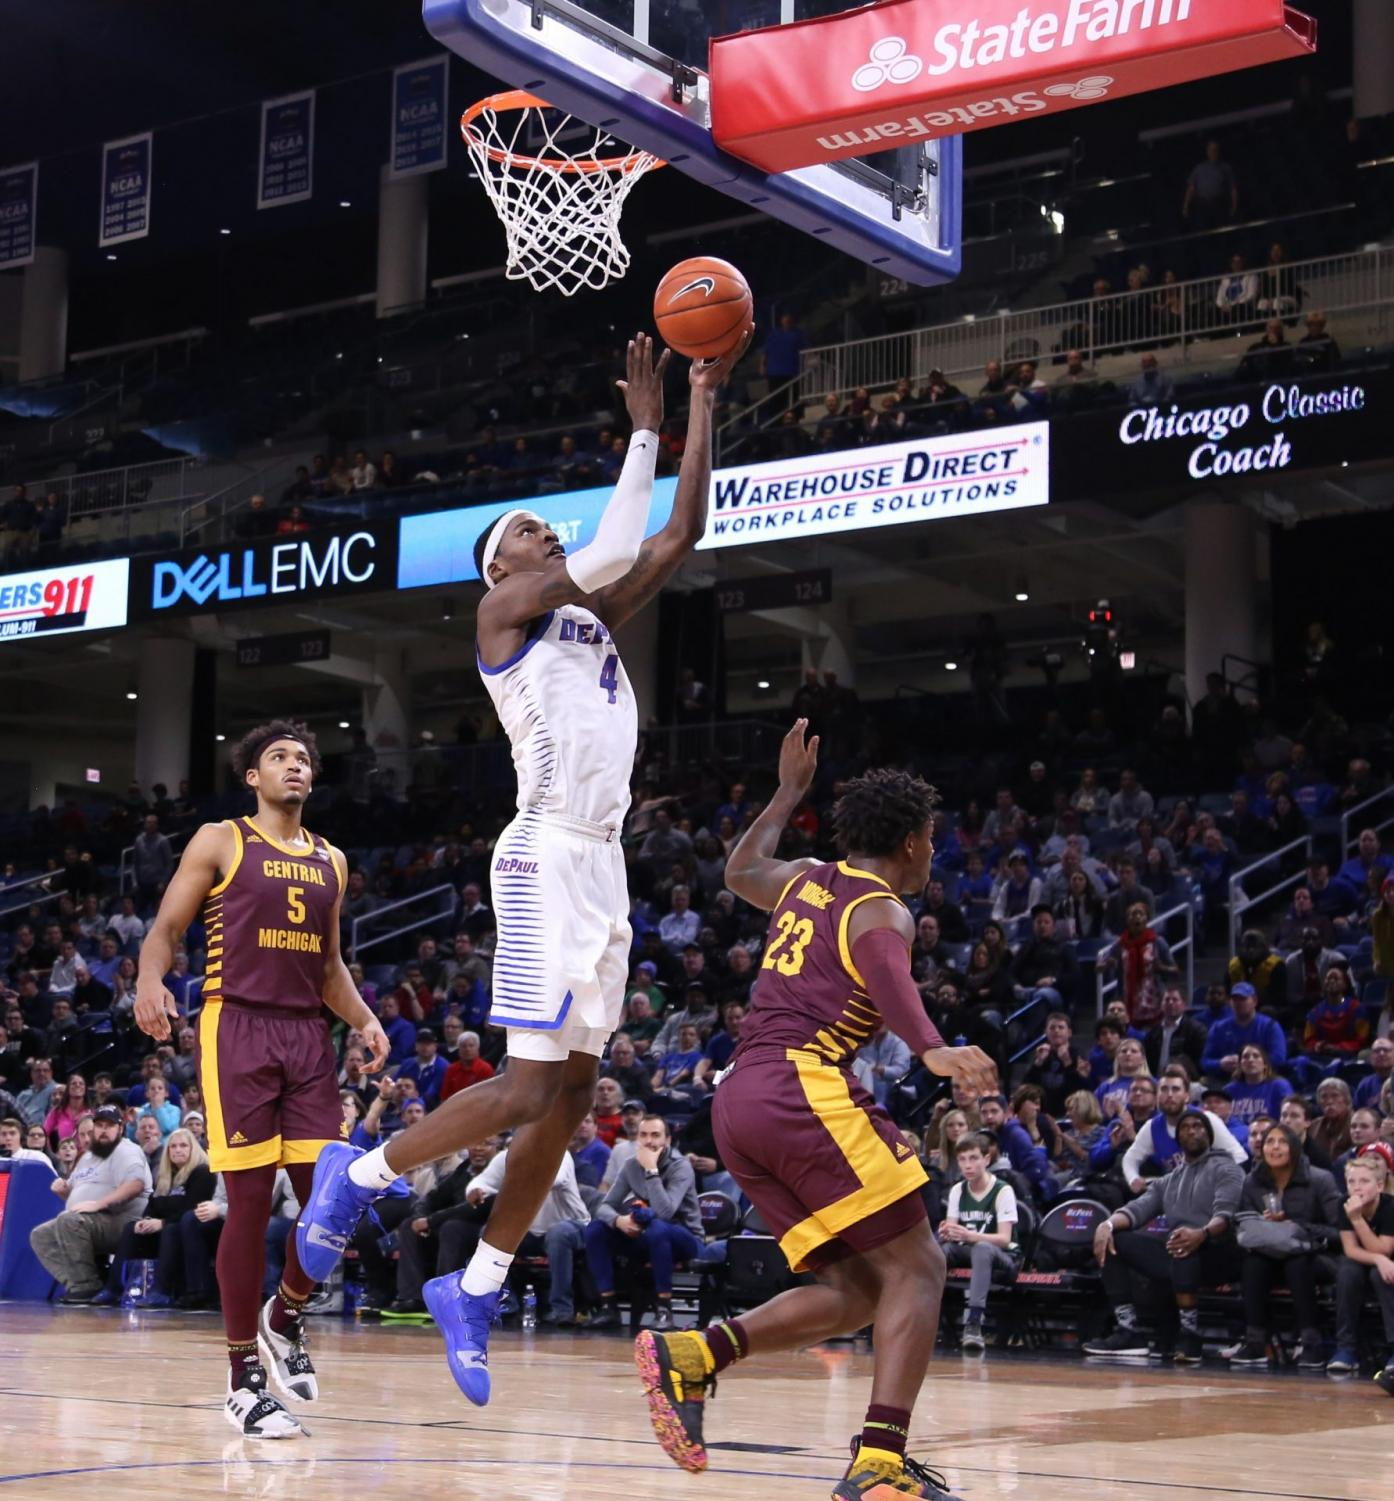 DePaul junior forward Paul Reed goes up for a layup against Central Michigan at Wintrust Arena.